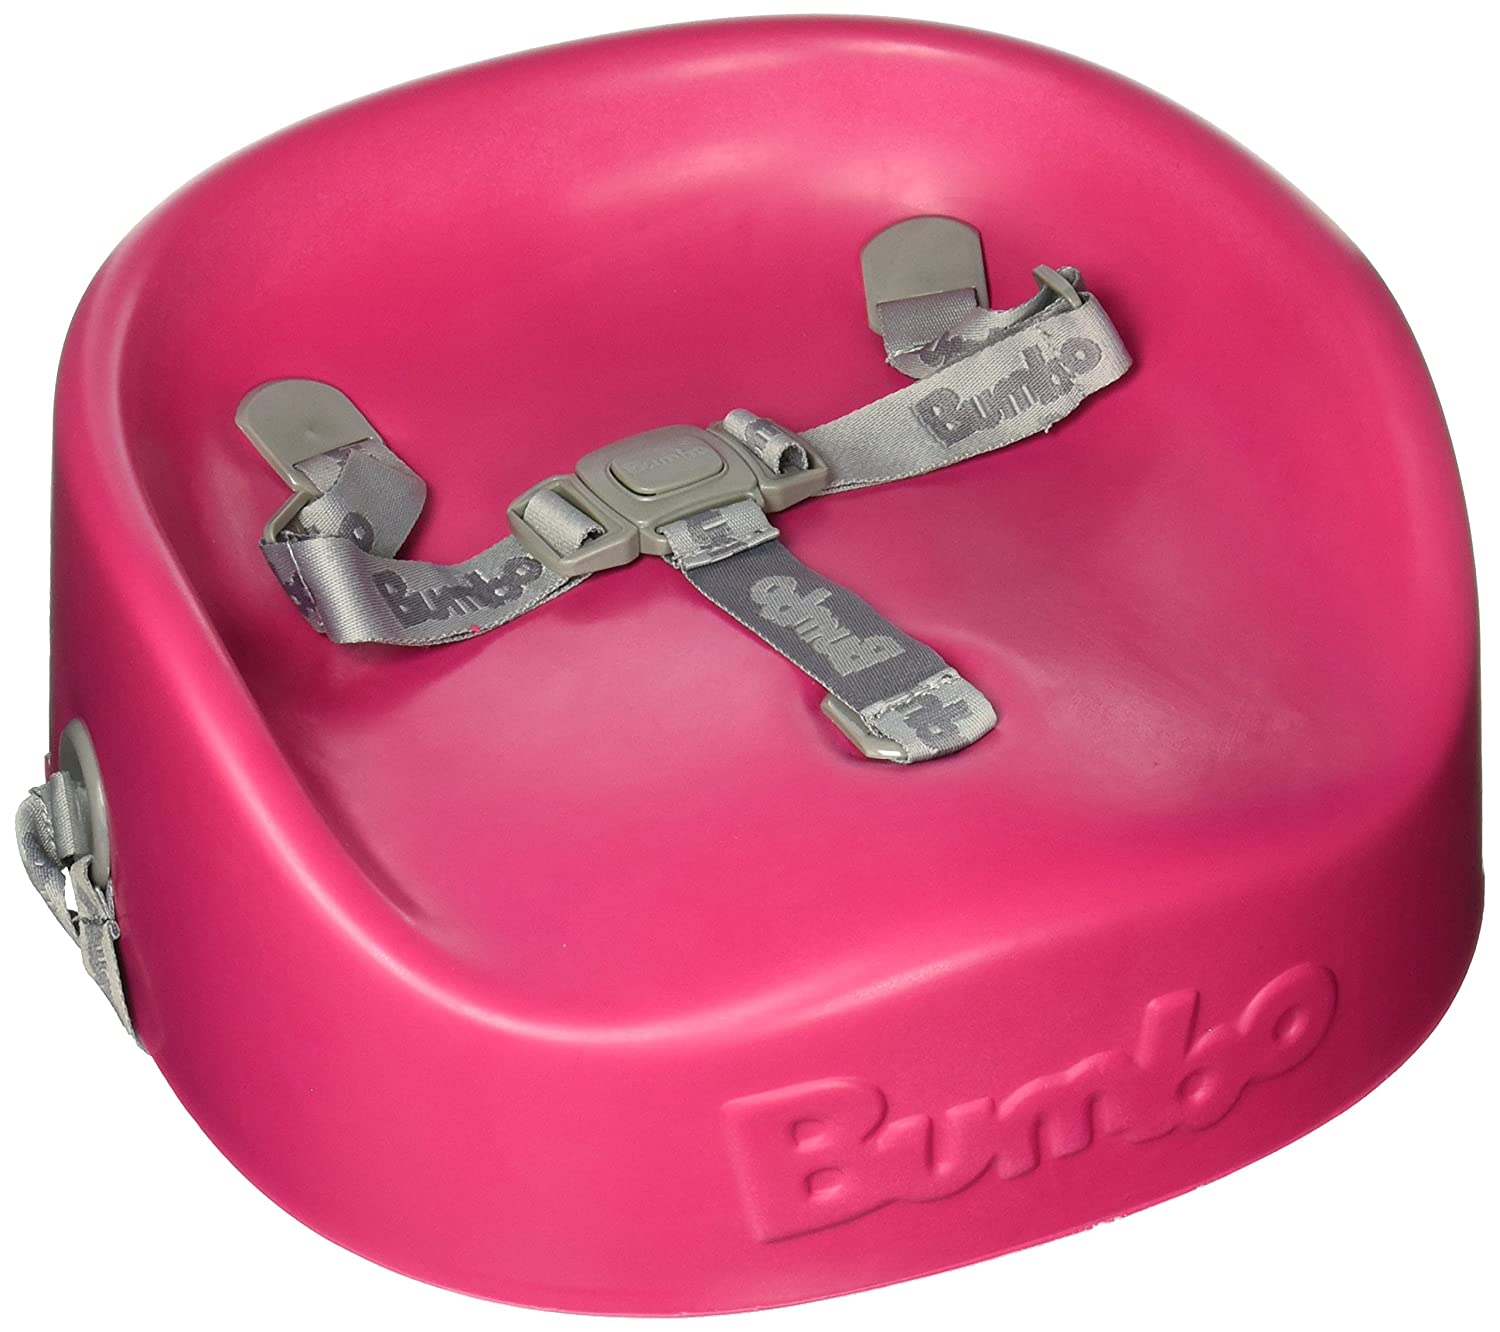 Bumbo Booster Seat - Magenta 832223001485